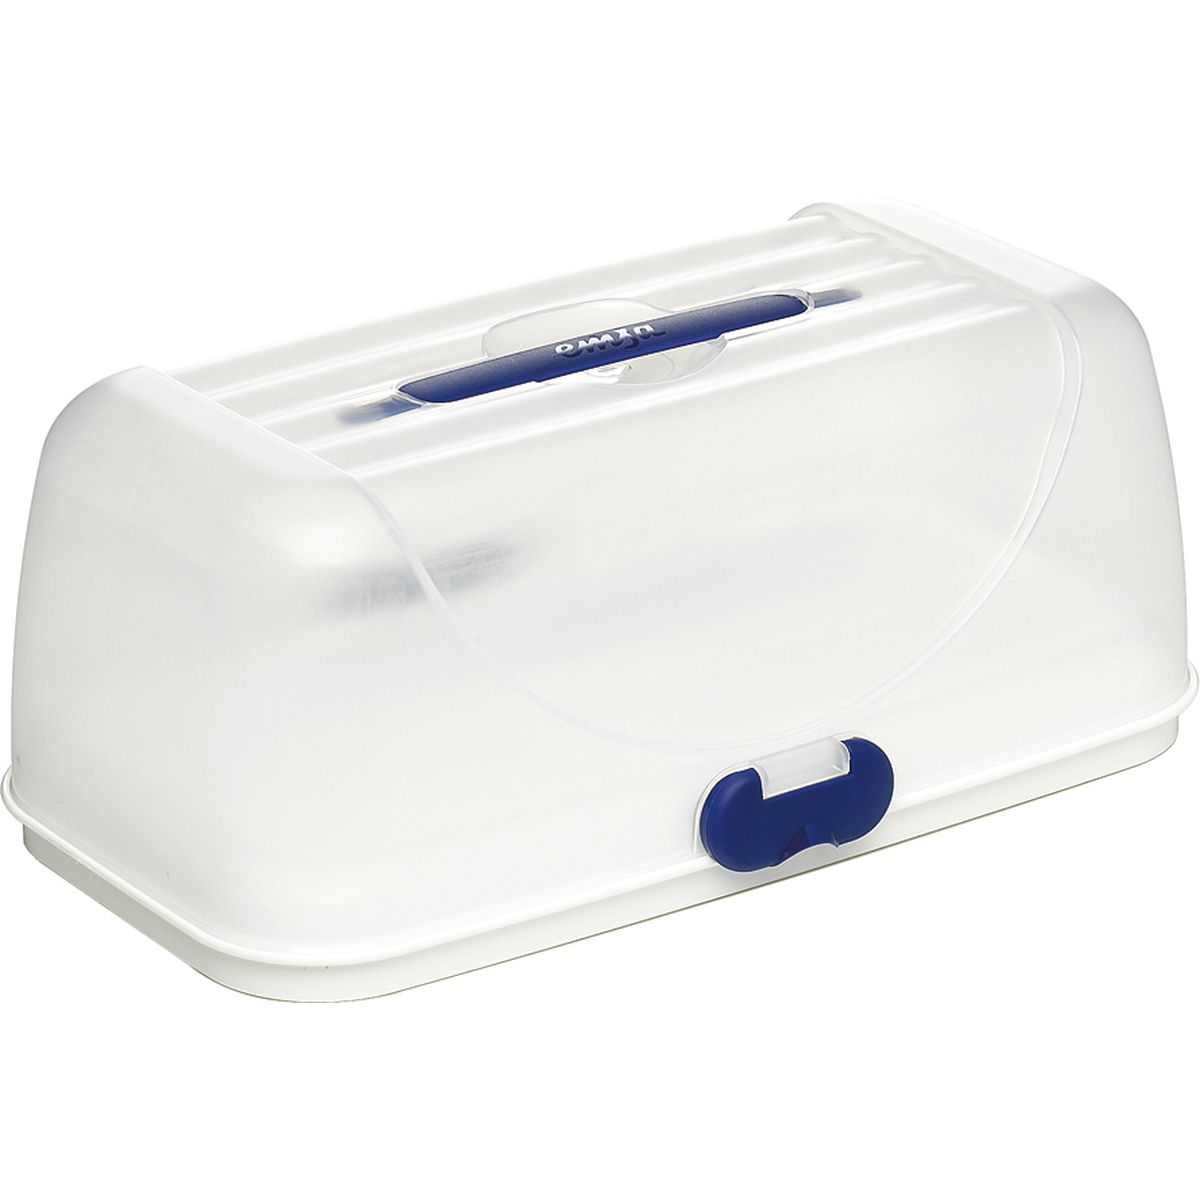 Boite de transport à gâteau rectangulaire en plastique blanc et bleu Superline Party Box 20.5 x 28 x 35 cm - Emsa